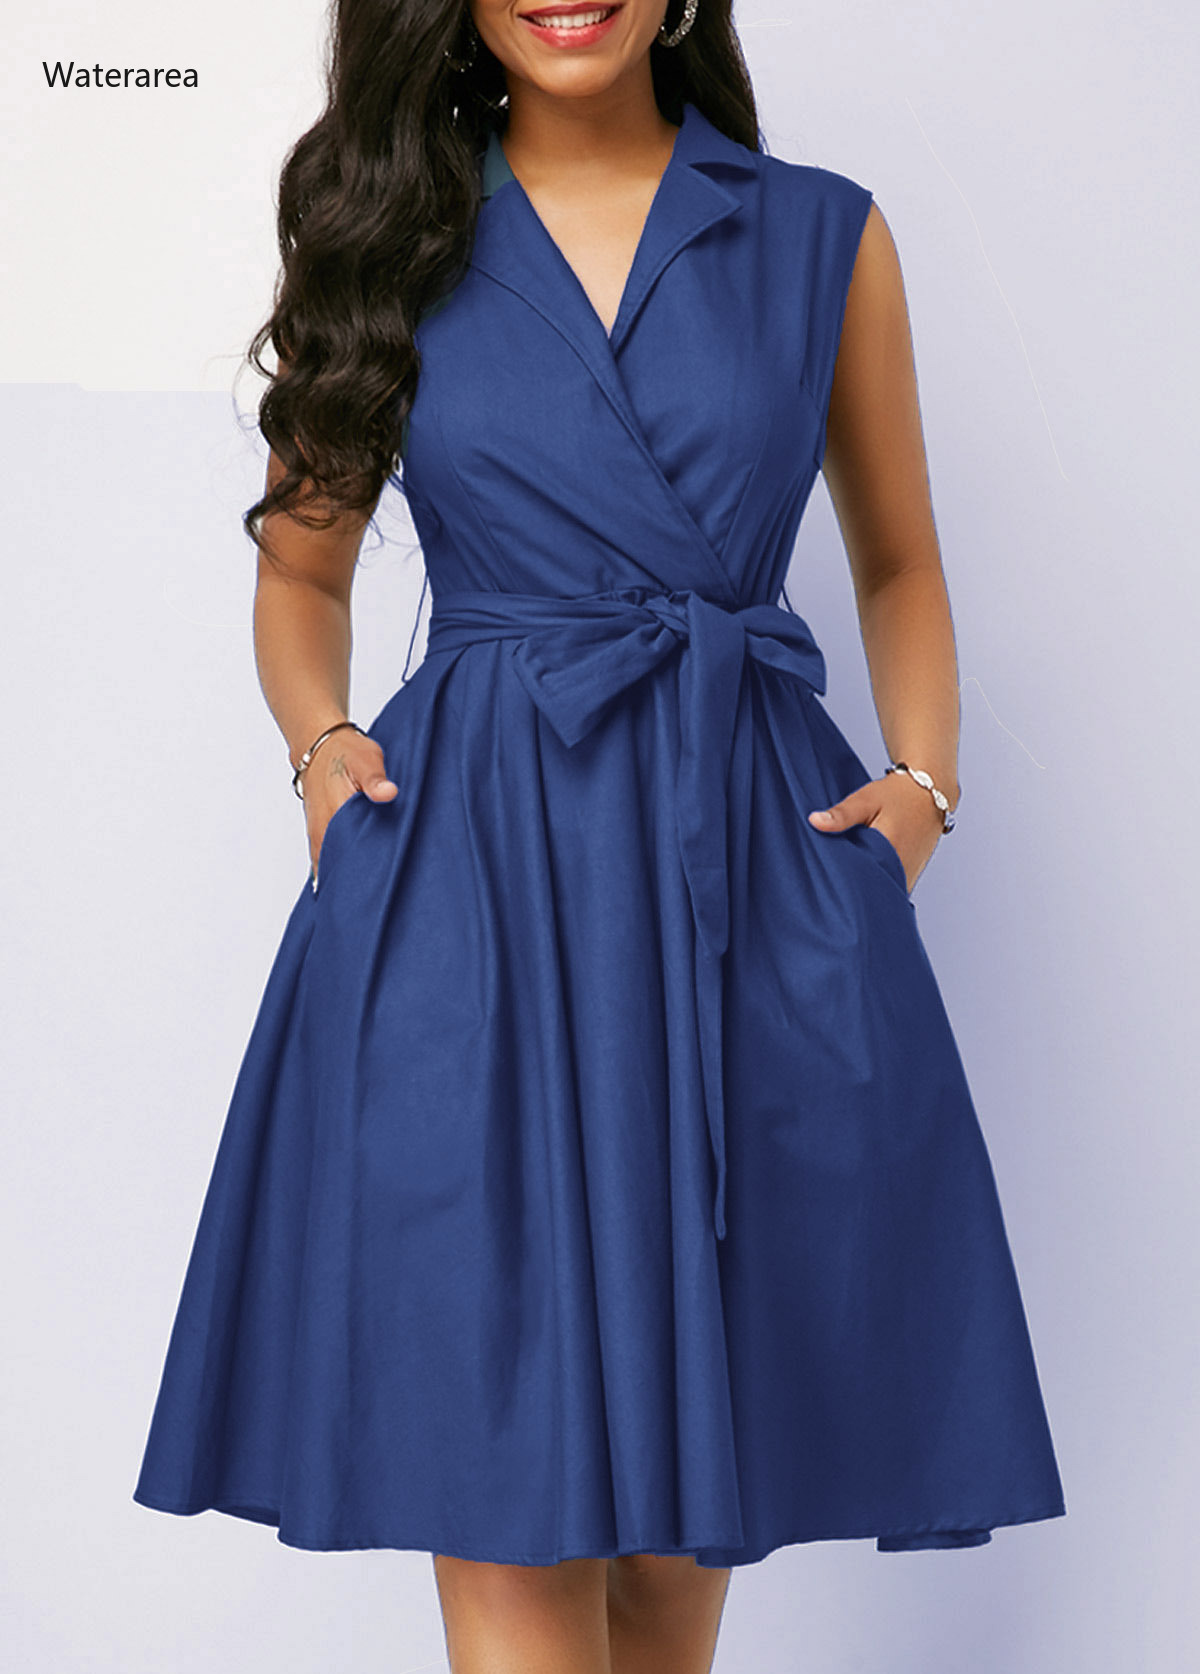 2019 New Summer Plus Size Women Turn-Down Collar Sleeveless Pure Color Lace-Up Waist With Wide Sexy Big Swing Dress ZB00651 1